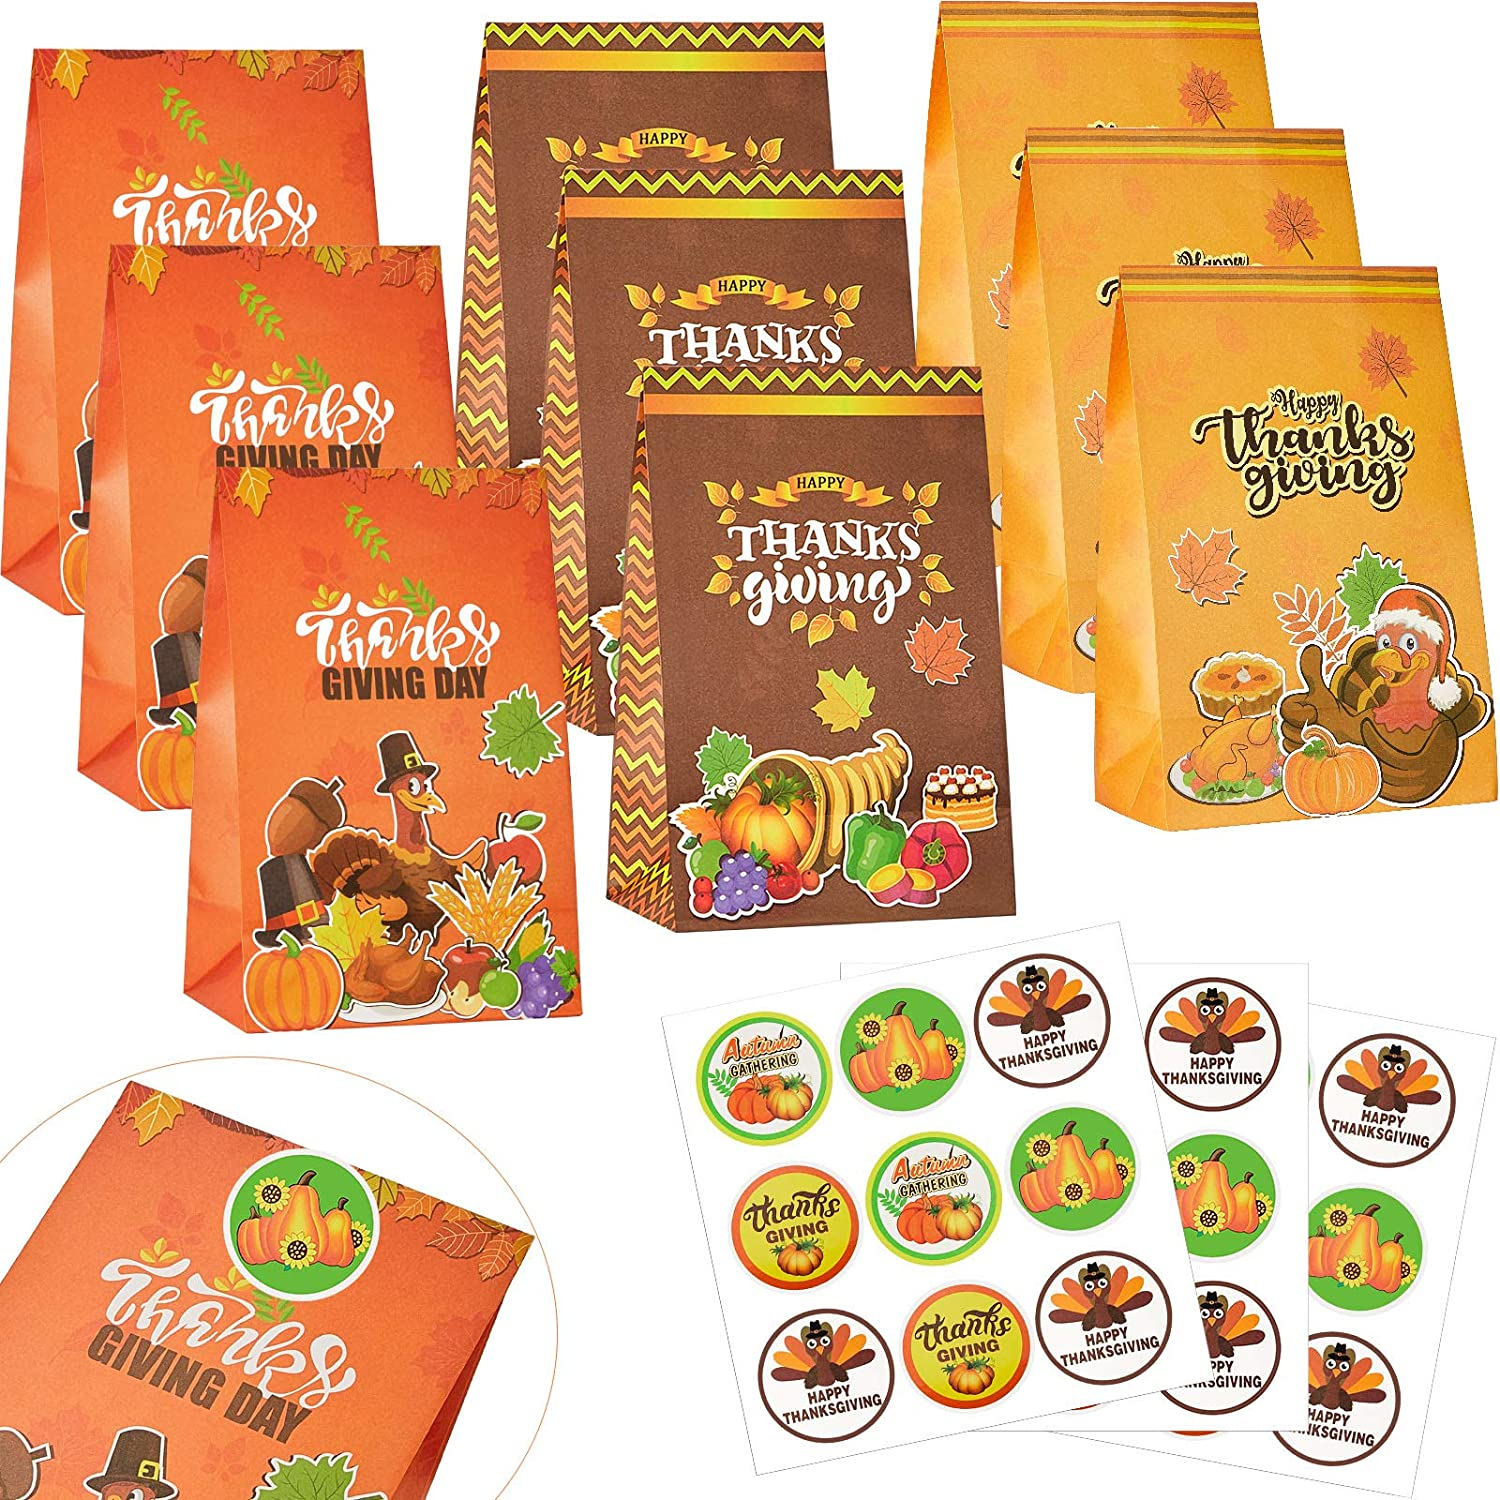 24 Pieces Thanksgiving Treat Bag Fall Leaves Party Bags Autumn Treat Boxes Paper Bags and 24 Pieces Thanksgiving Bags Sealing Stickers for Thanksgiving Party Favor Autumn Party Themed Party Supplies